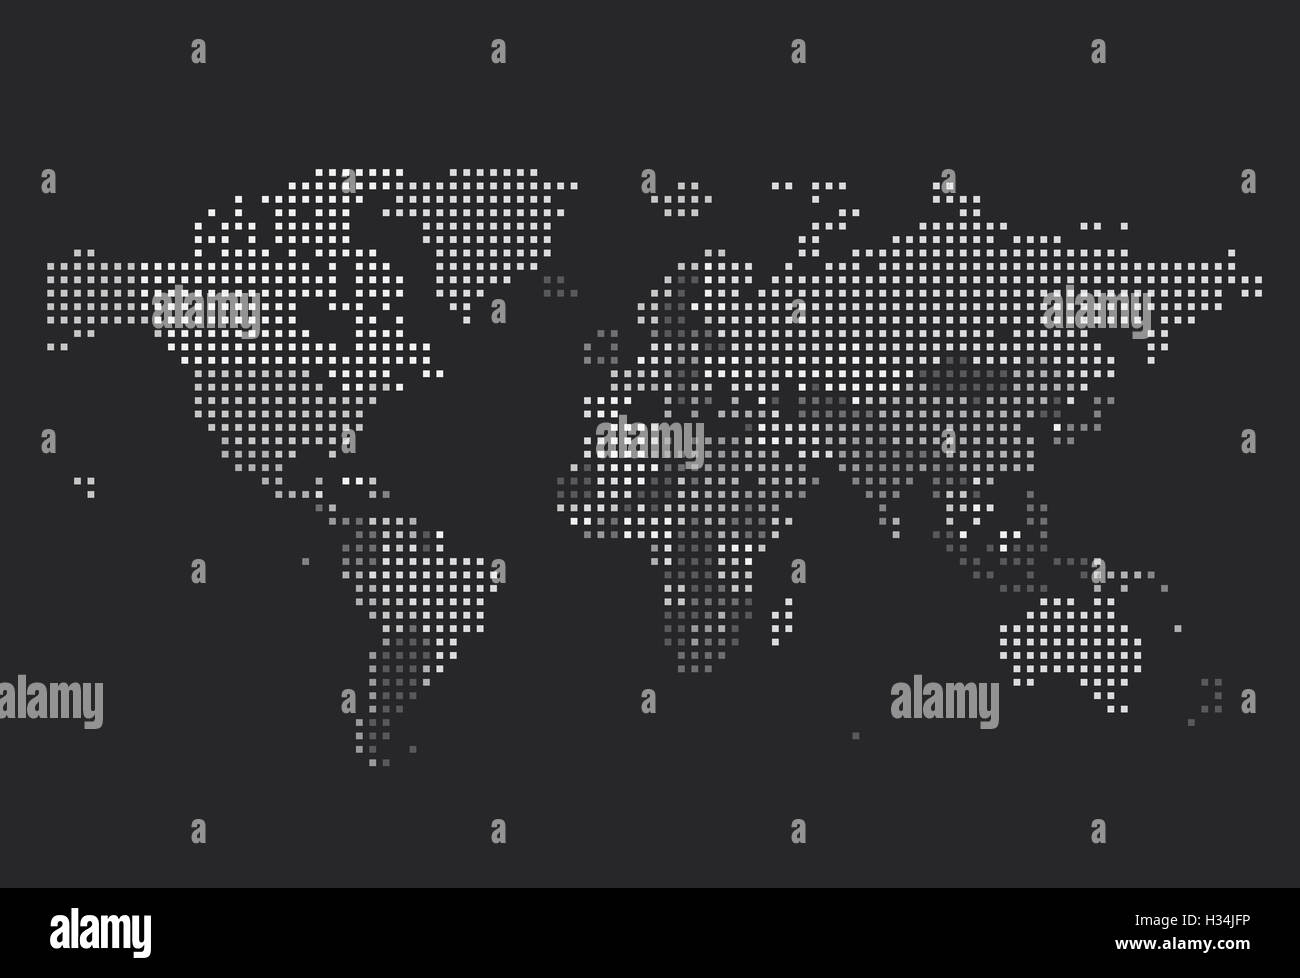 Dotted world map of square dots on dark background stock photo dotted world map of square dots on dark background gumiabroncs Images